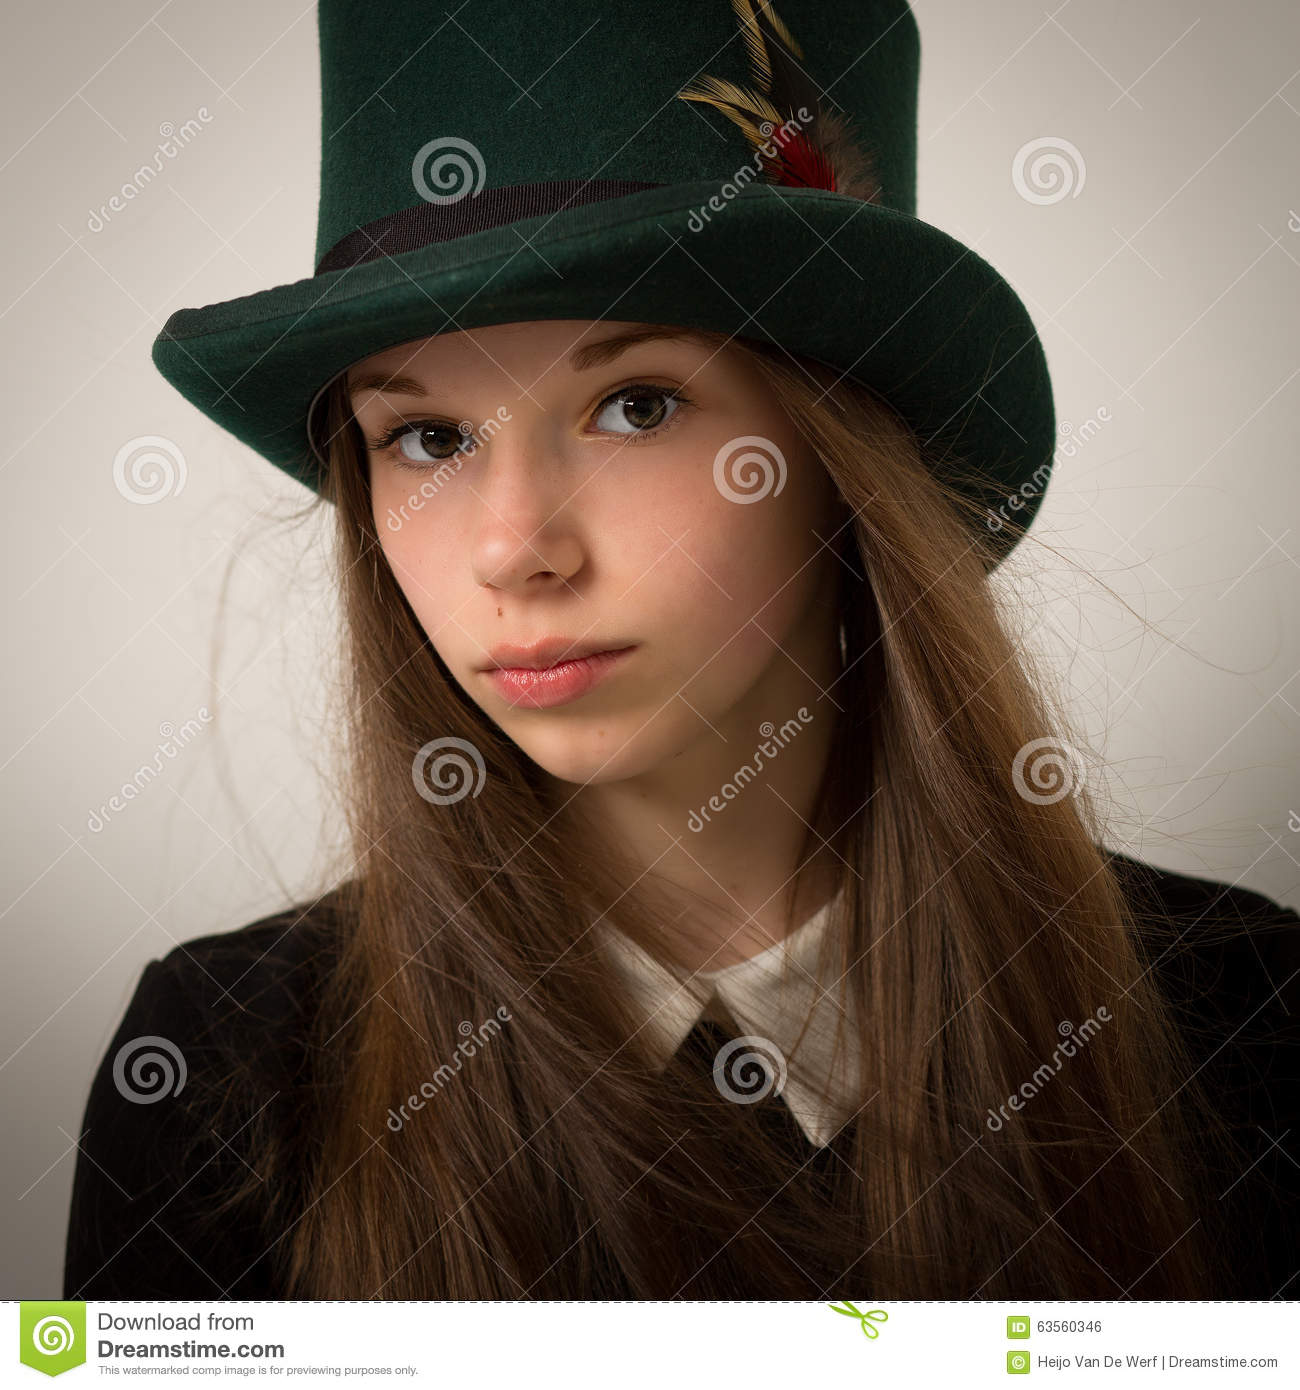 Teenage Victorian Girl With Very Long Hair And A Top Hat Stock Photo ... b33806d51